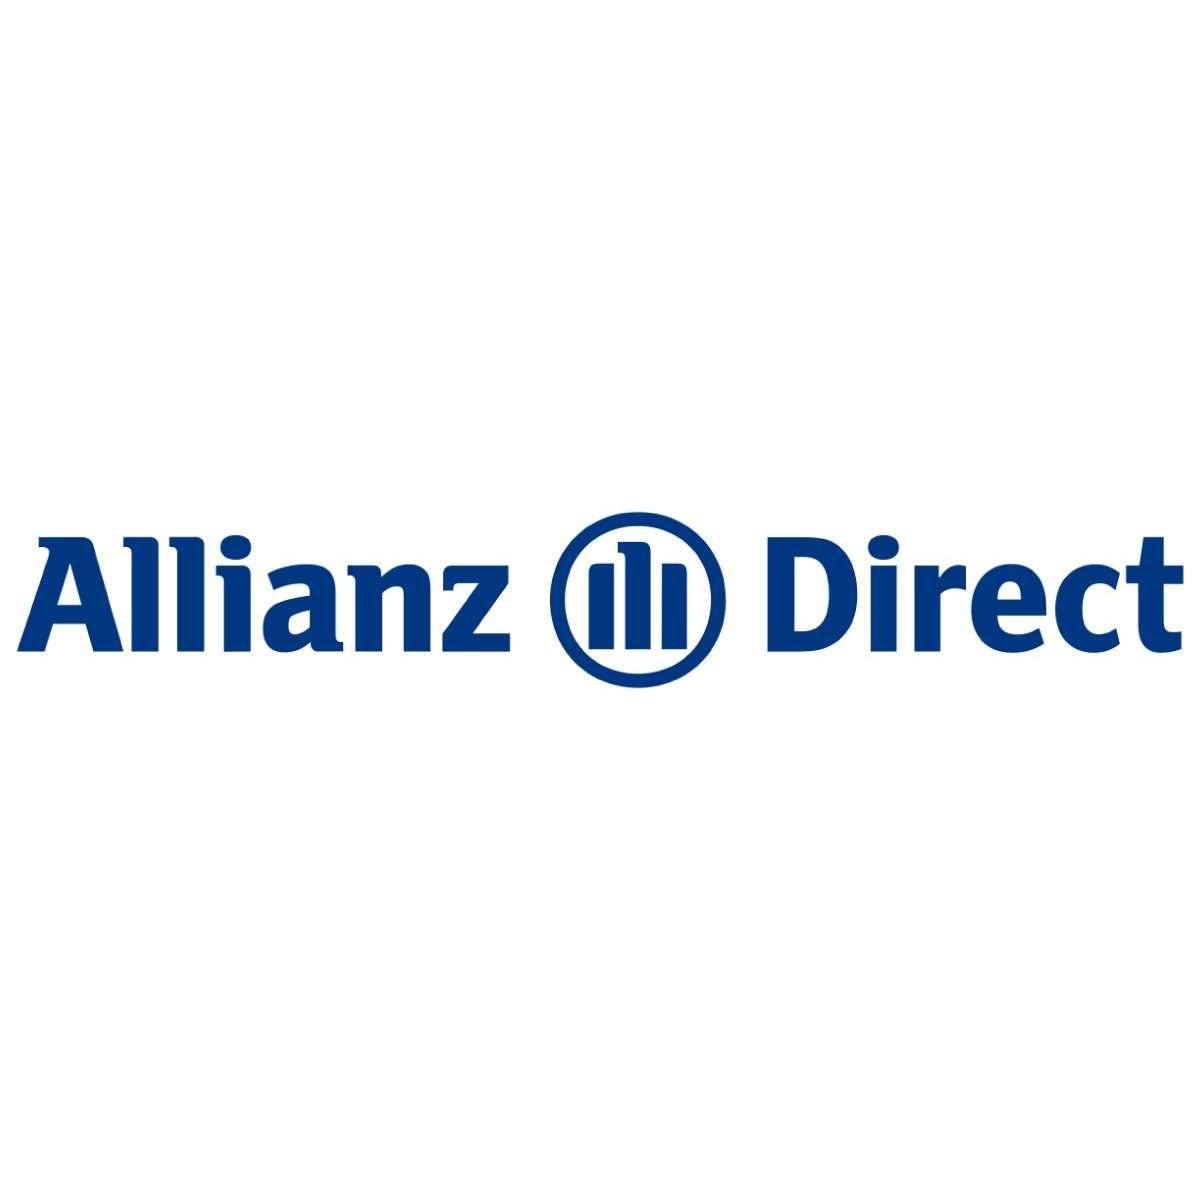 1200x1200_1x1_logo-allianz_direct-(2)